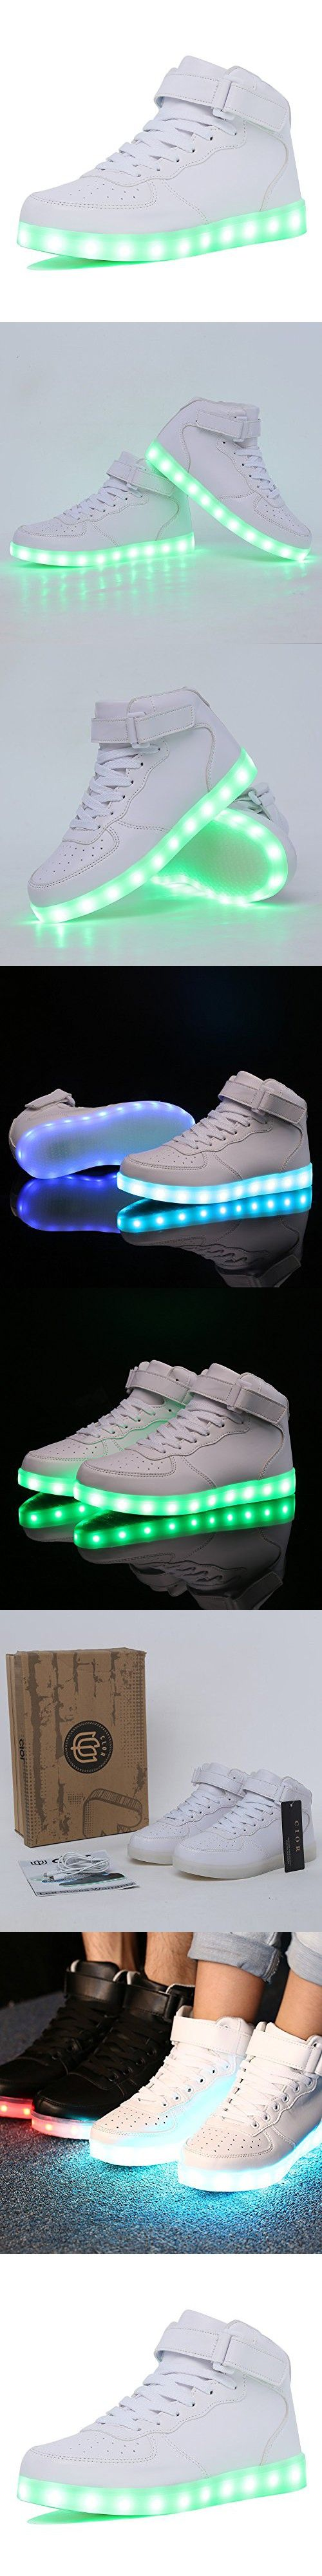 CIOR High Top Led Light Up Shoes 11 Colors Flashing Rechargeable Sneakers for Mens Womens Girls Boys For Christmas,101B,02,39